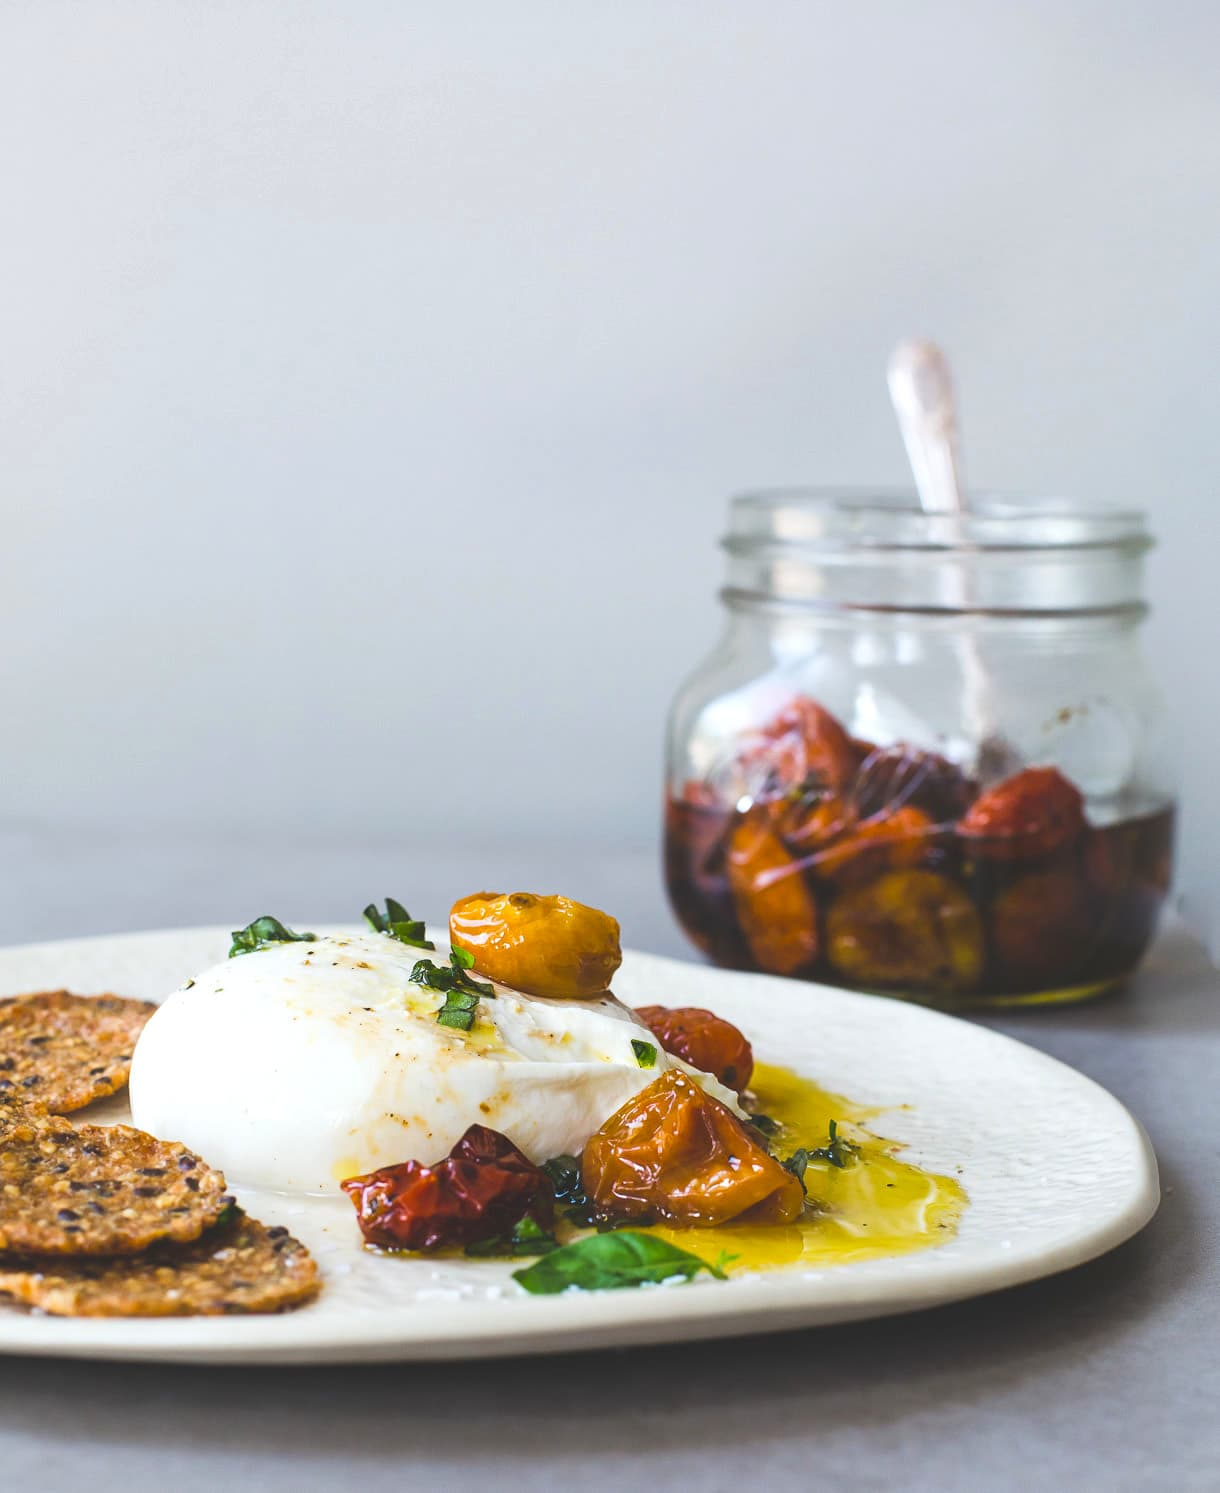 Burrata with Slow Roasted Cherry Tomatoes and Olive Oil